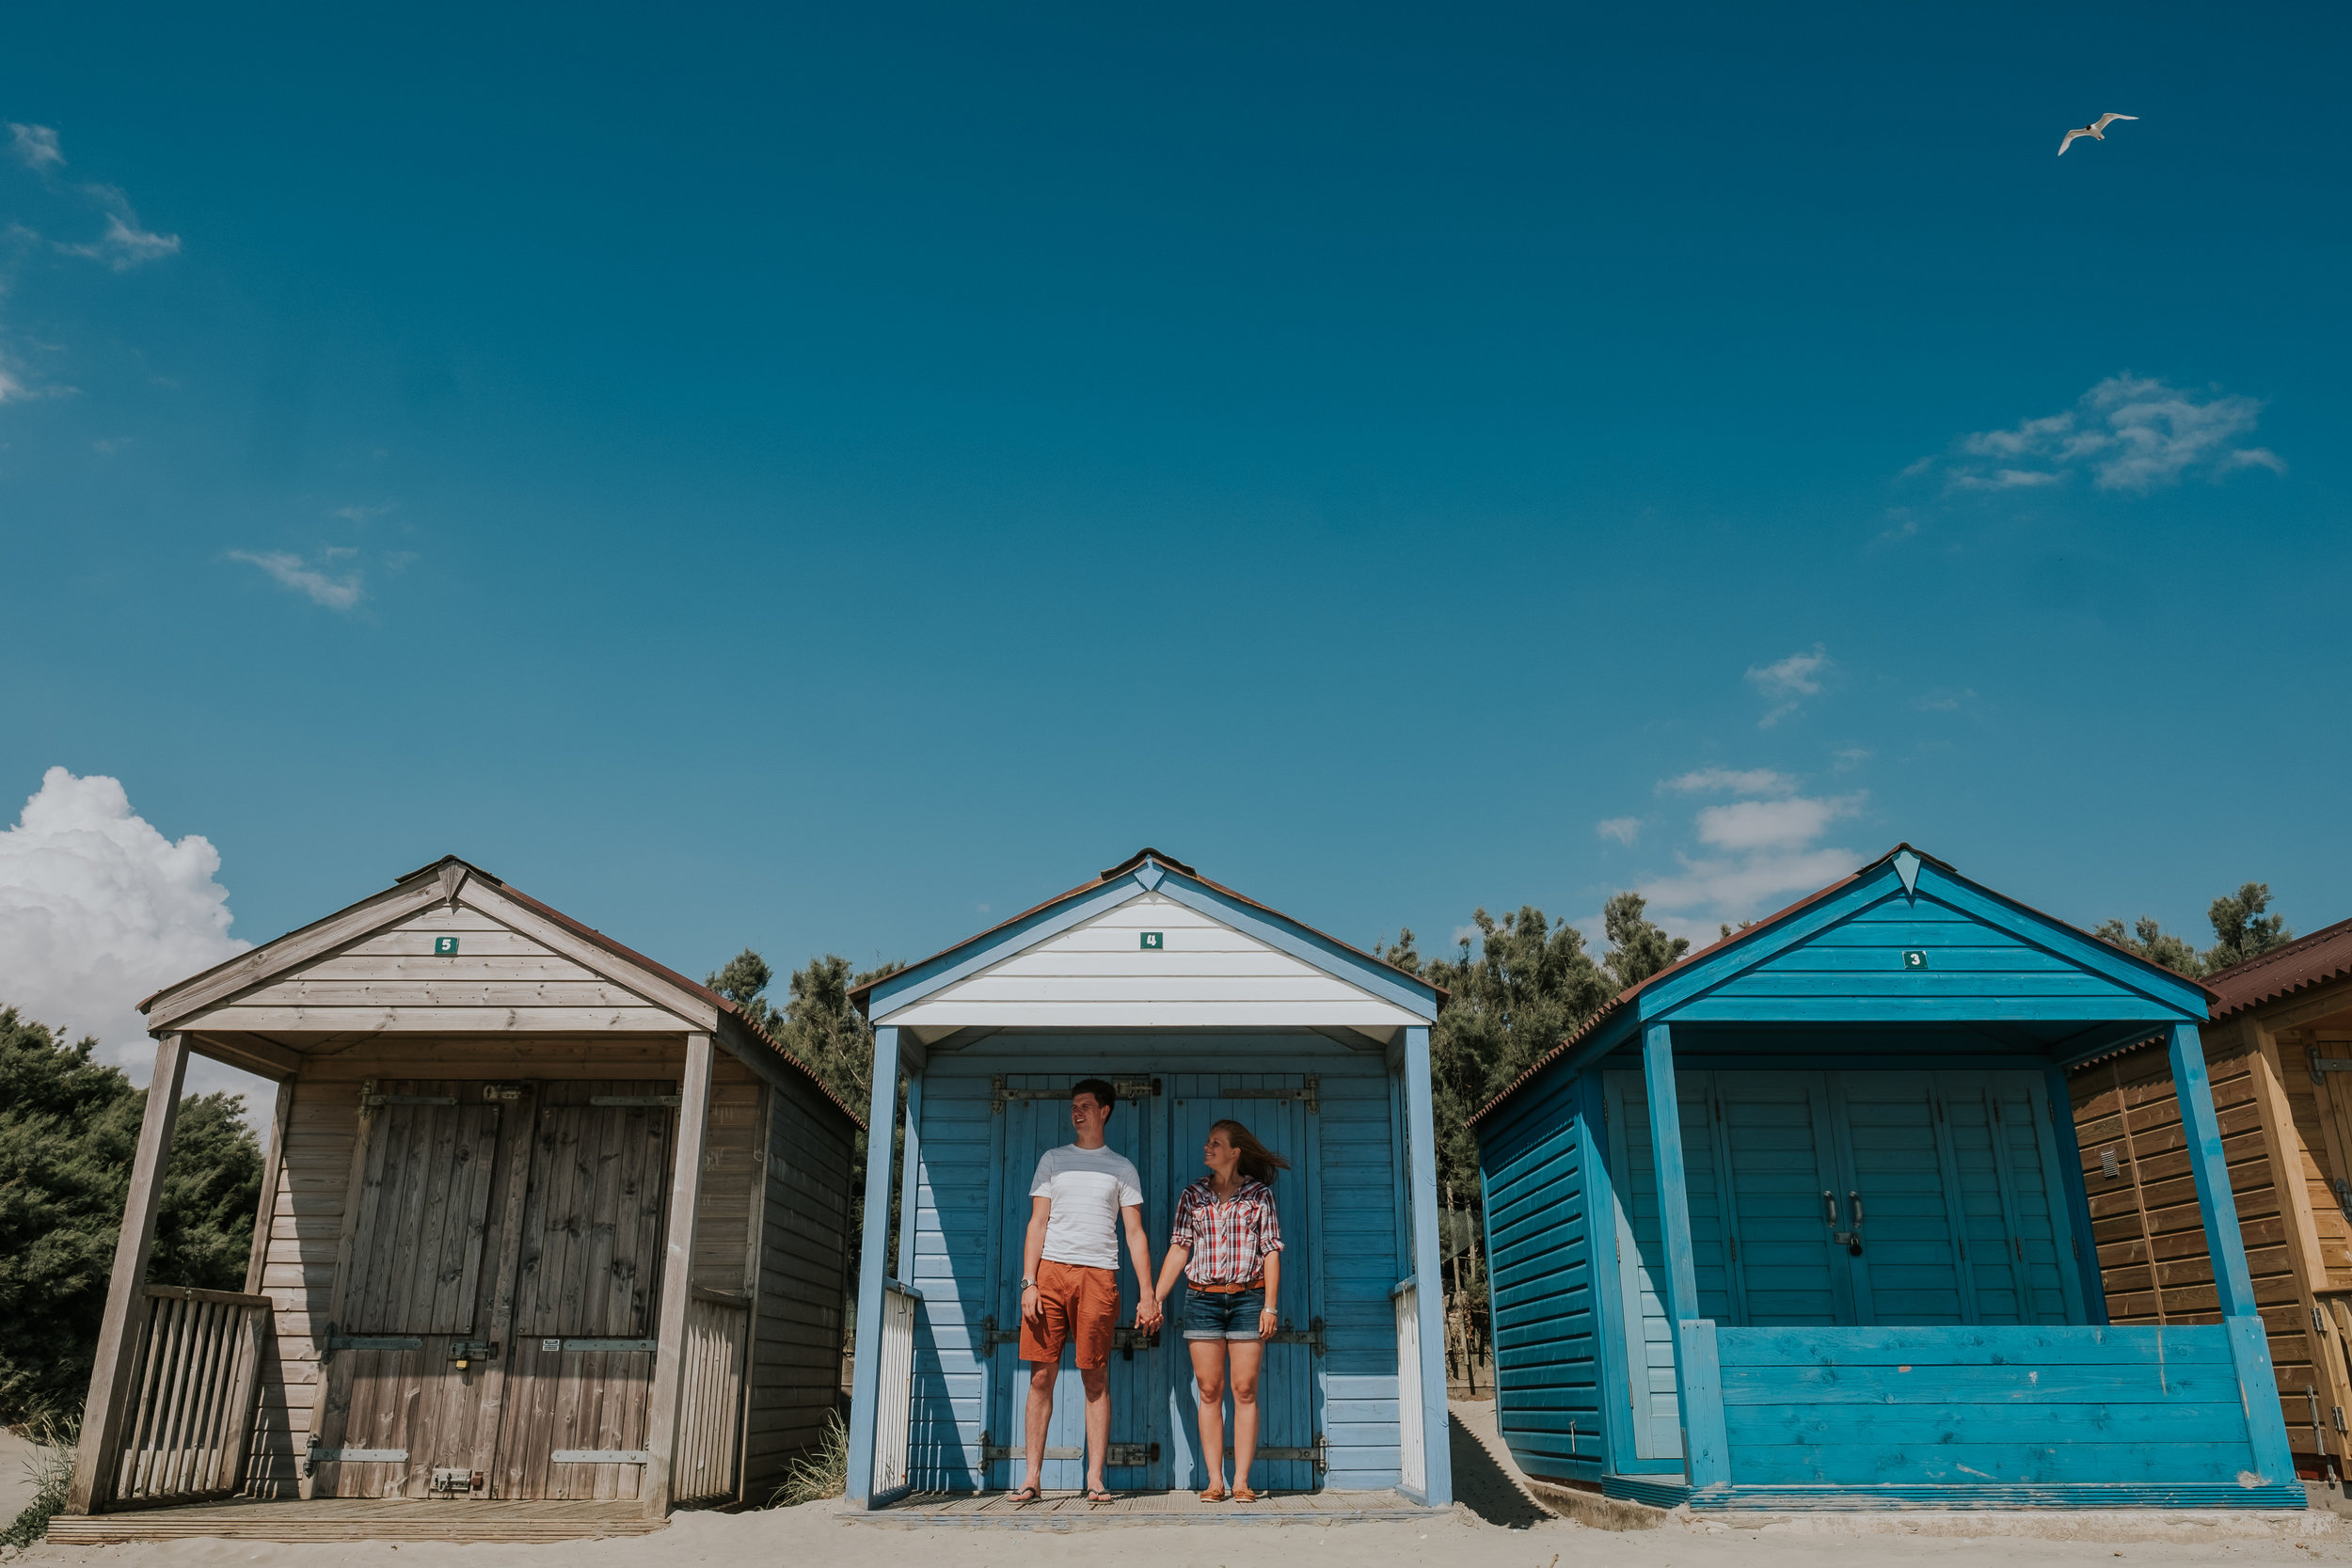 West Wittering Engagement Shoot Sussex Wedding Photographer Southend Barns Joanna Nicole Photography Cool Creative Fun Alternative 18.jpg